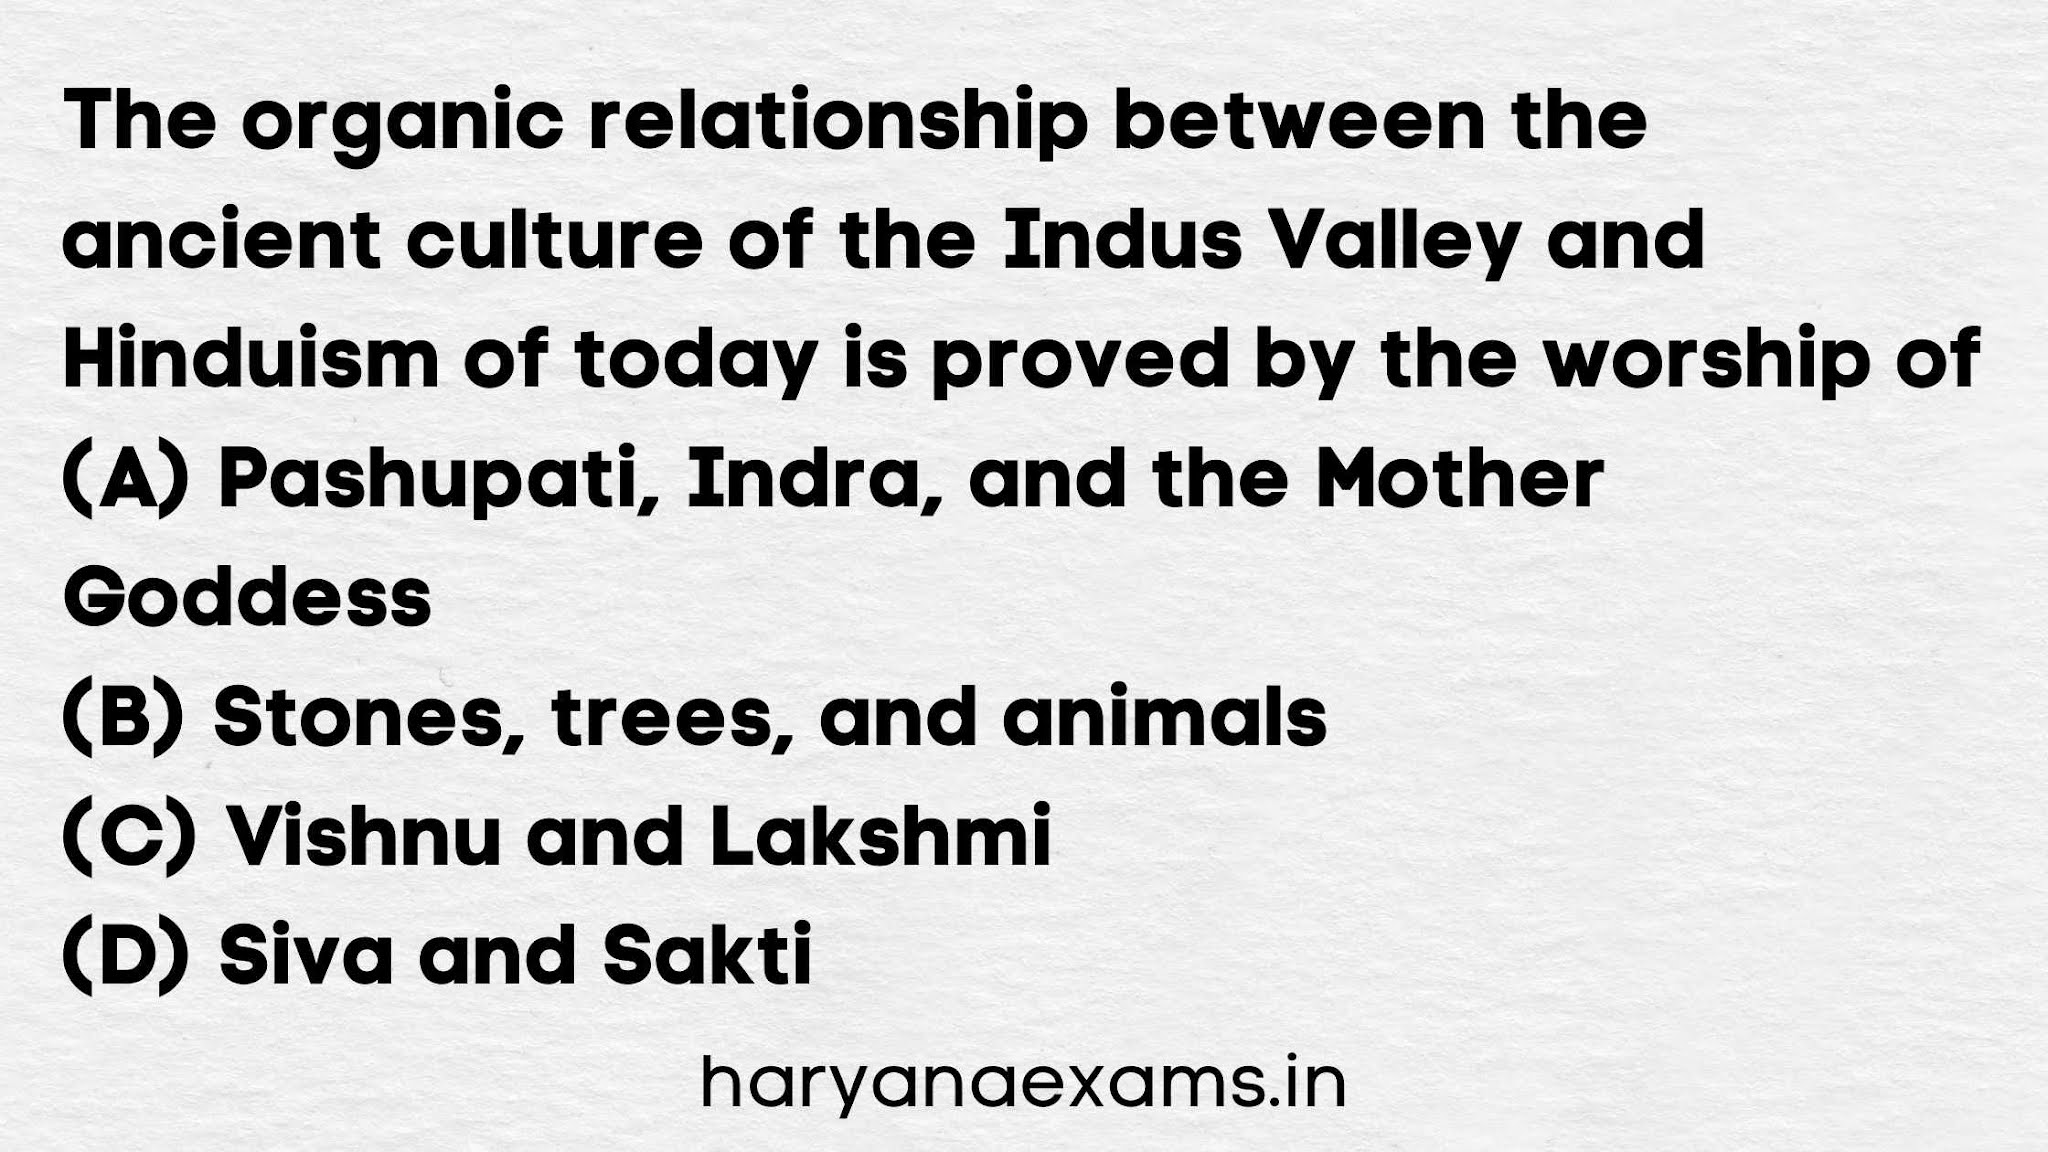 The organic relationship between the ancient culture of the Indus Valley and Hinduism of today is proved by the worship of   (A) Pashupati, Indra, and the Mother Goddess   (B) Stones, trees, and animals   (C) Vishnu and Lakshmi   (D) Siva and Sakti